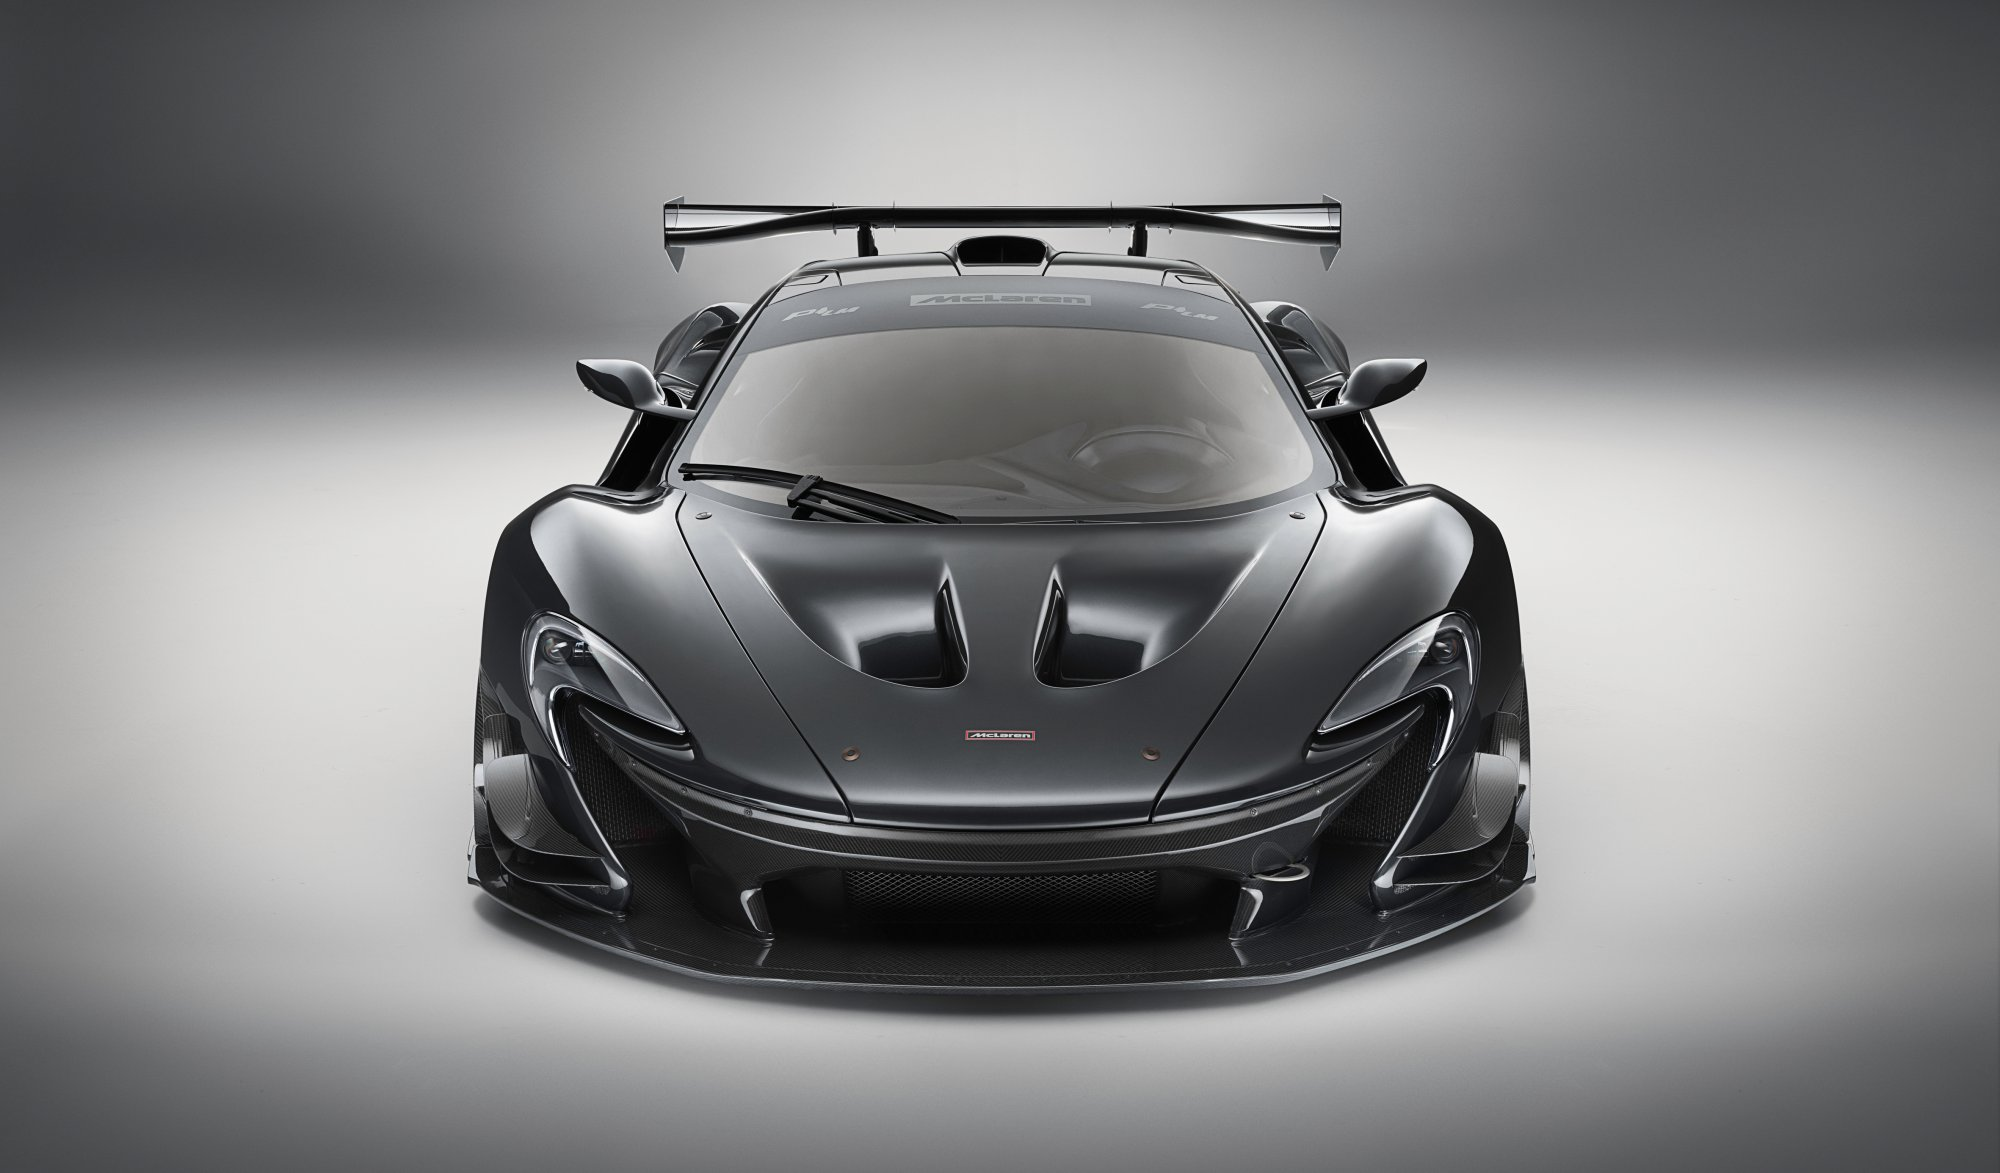 news mclaren p1 lm claims n252rburgring lap time